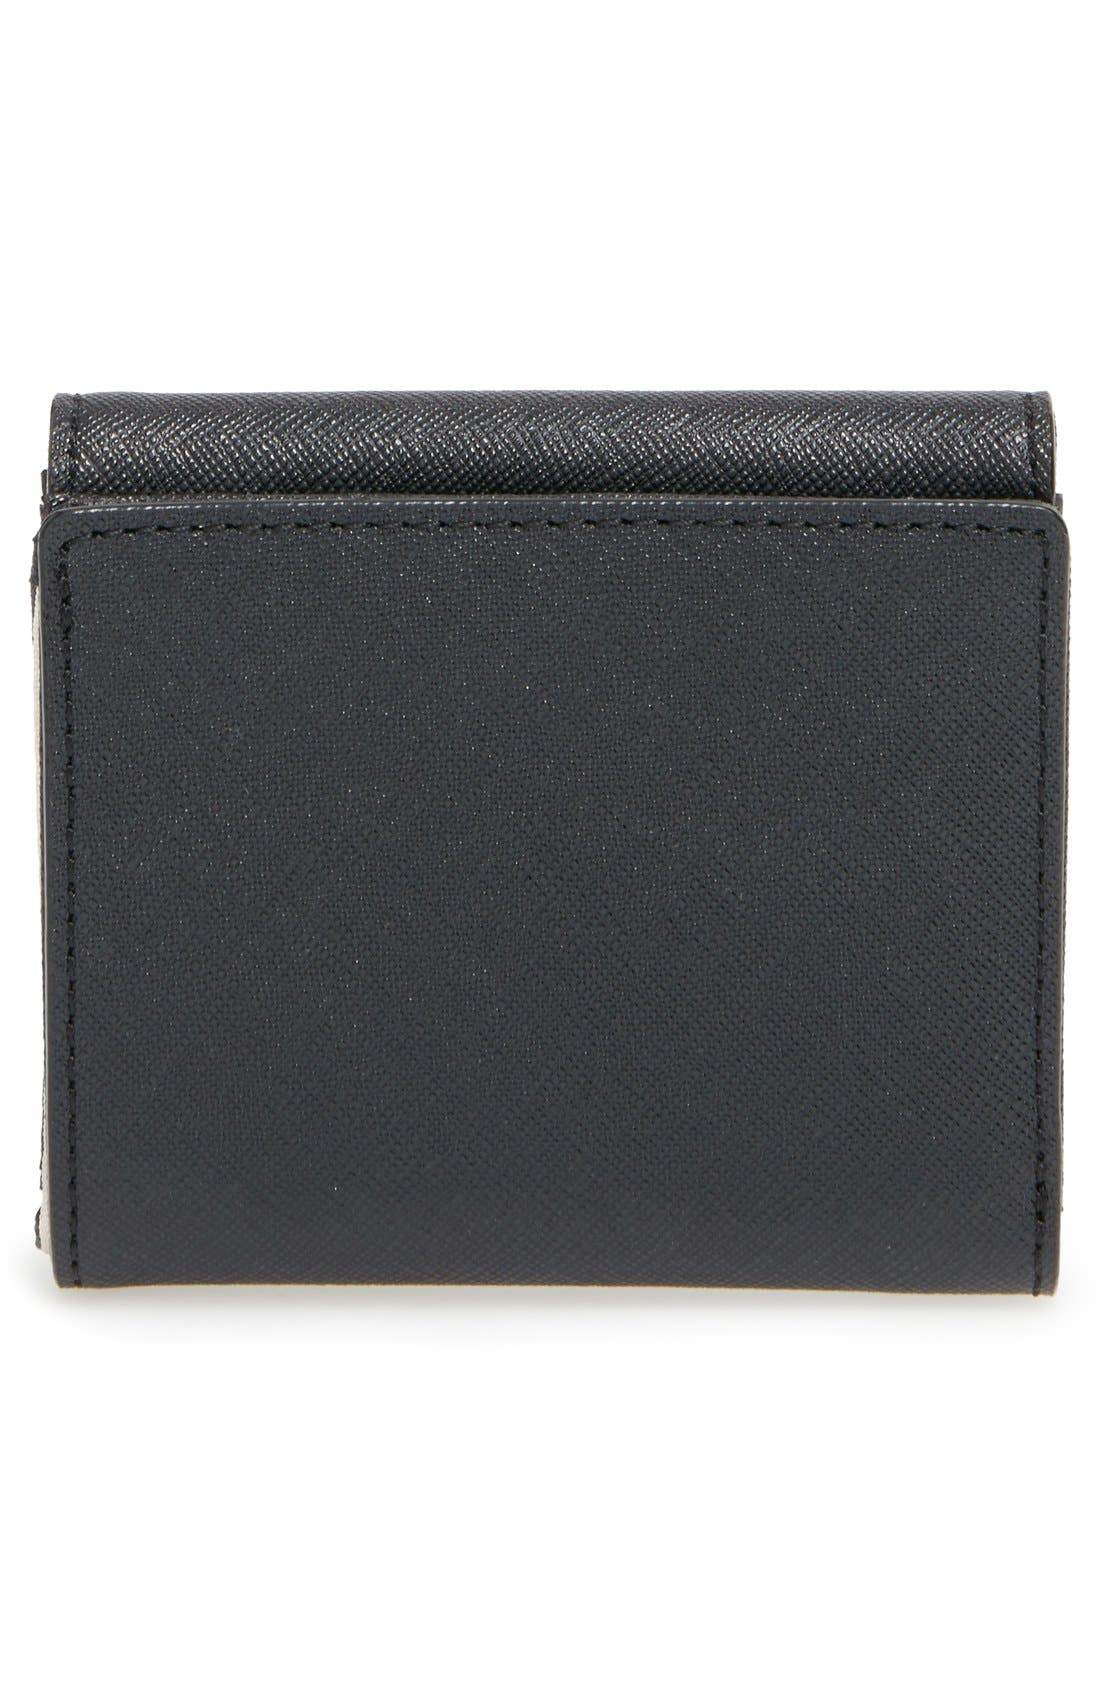 'cedar street - tavy' leather wallet,                             Alternate thumbnail 2, color,                             001